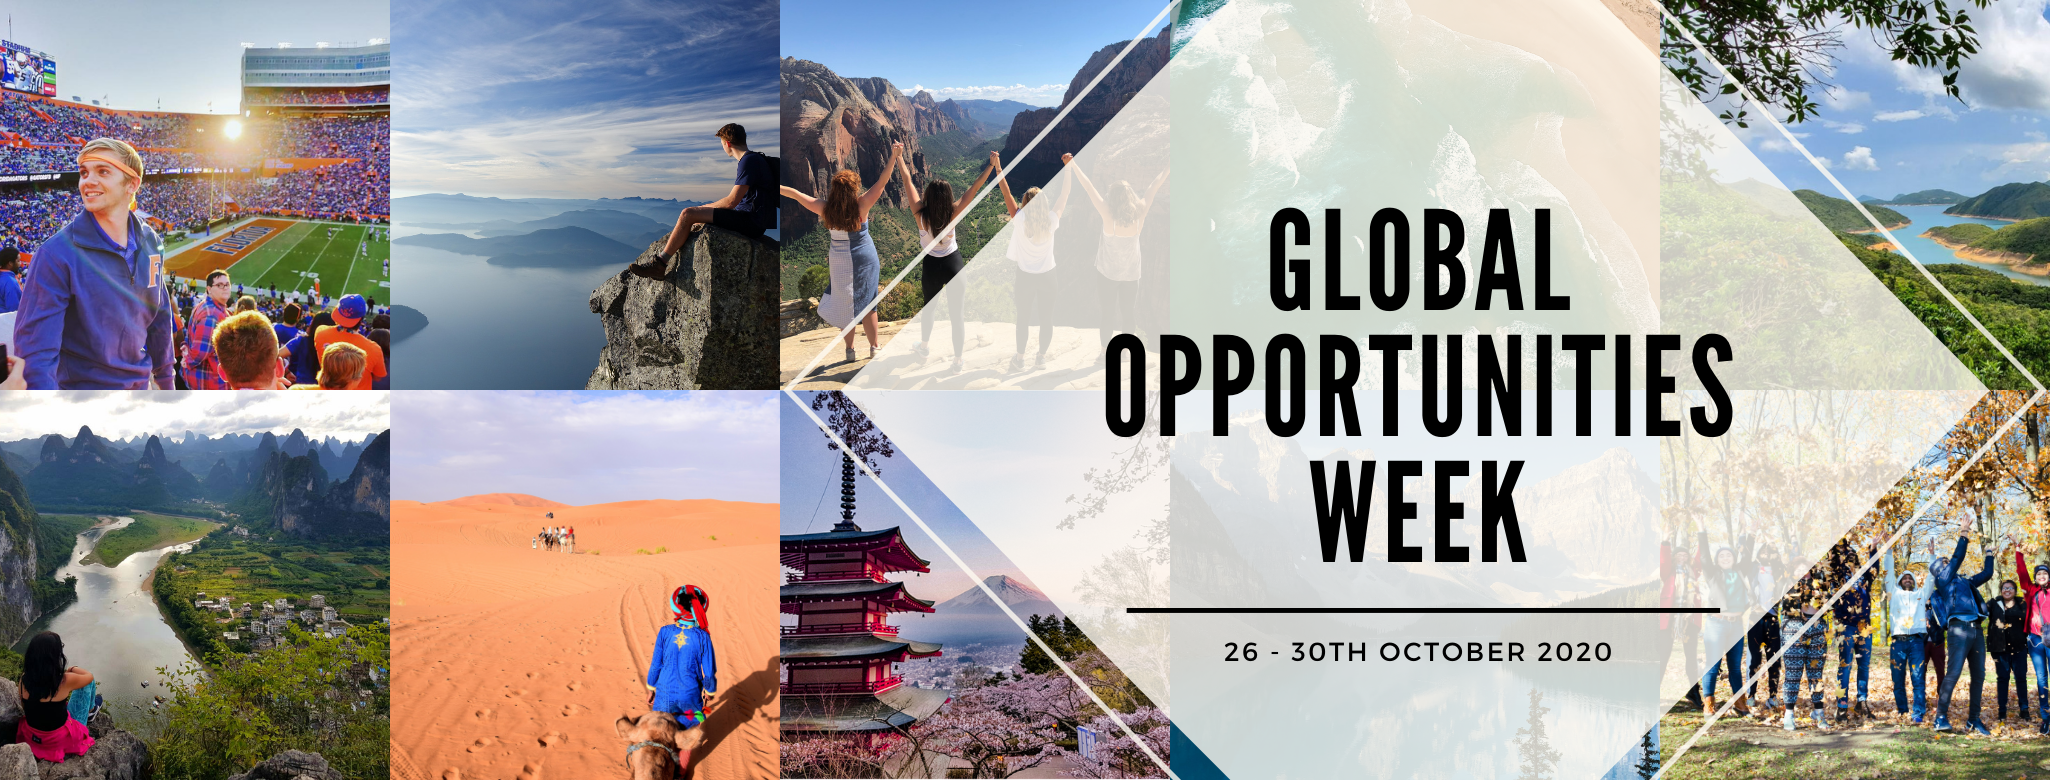 Global Opportunities Week 2020